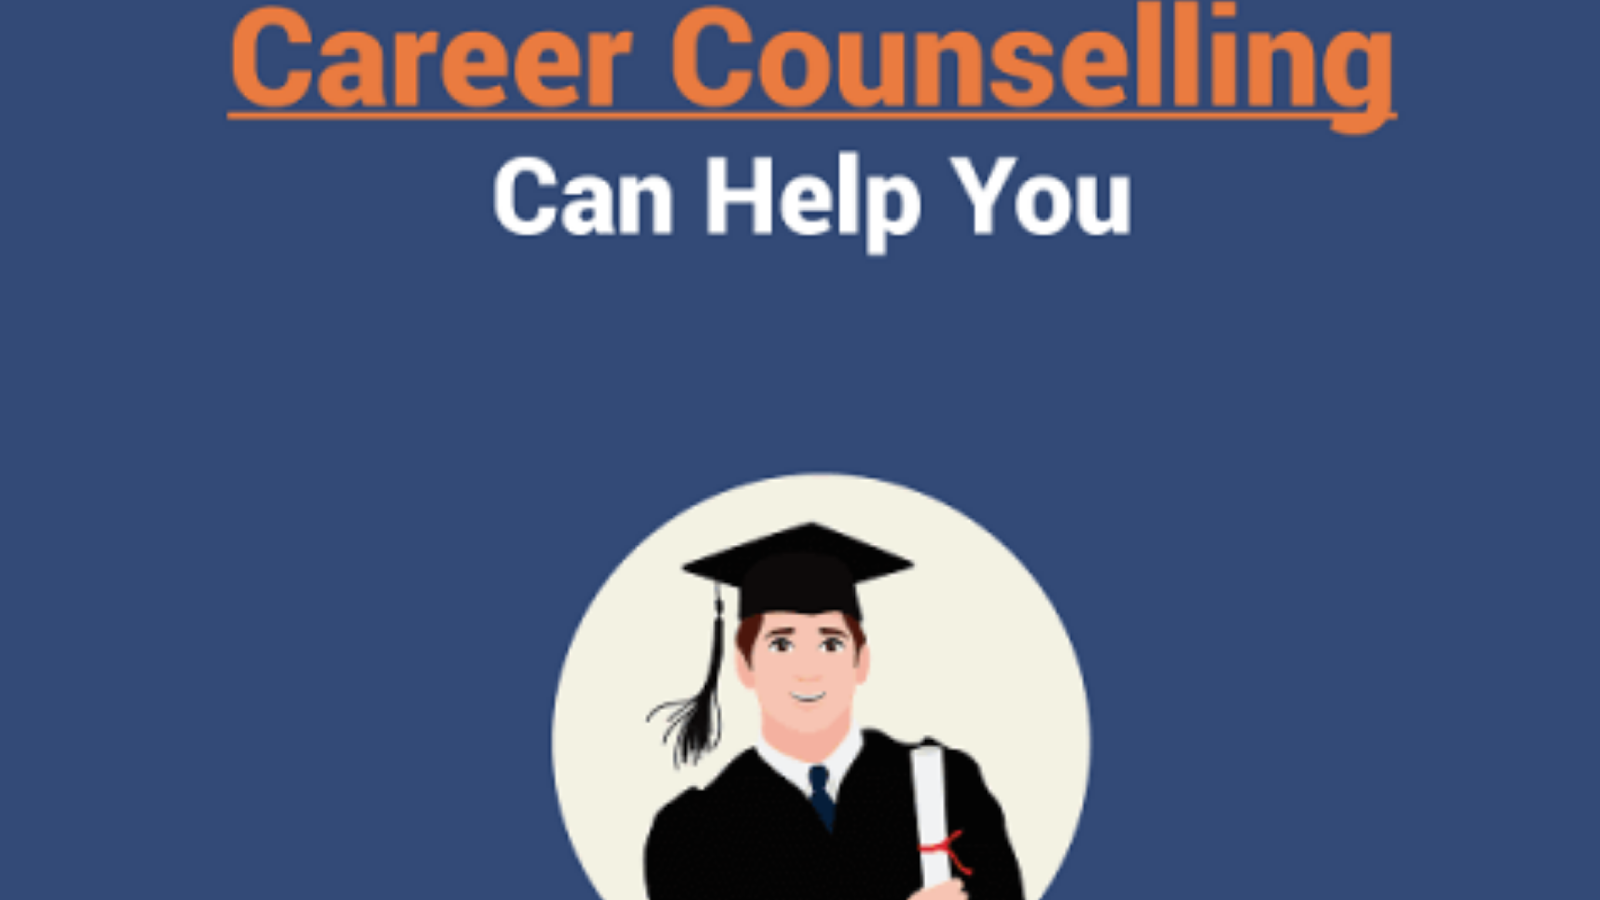 Career counseling online - help